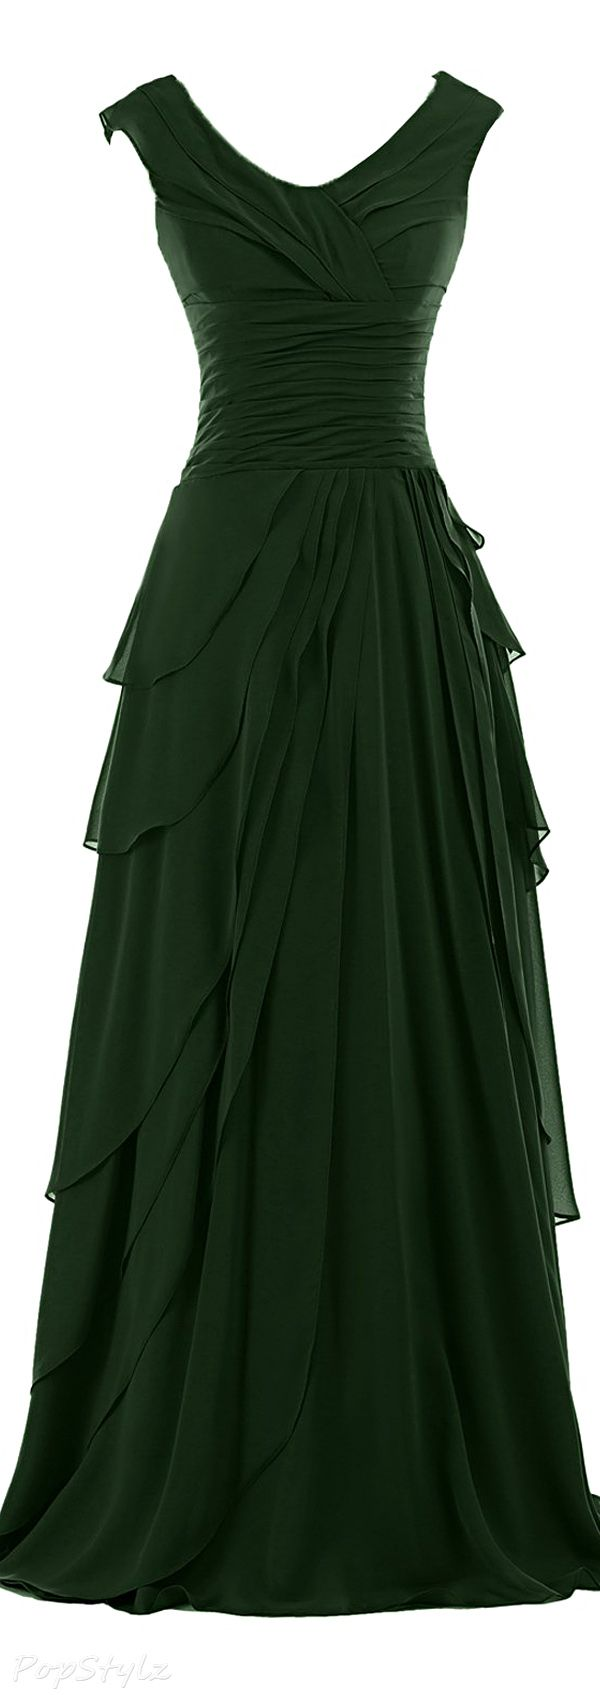 Sunvary Ruffled Chiffon A-Line Evening Gown